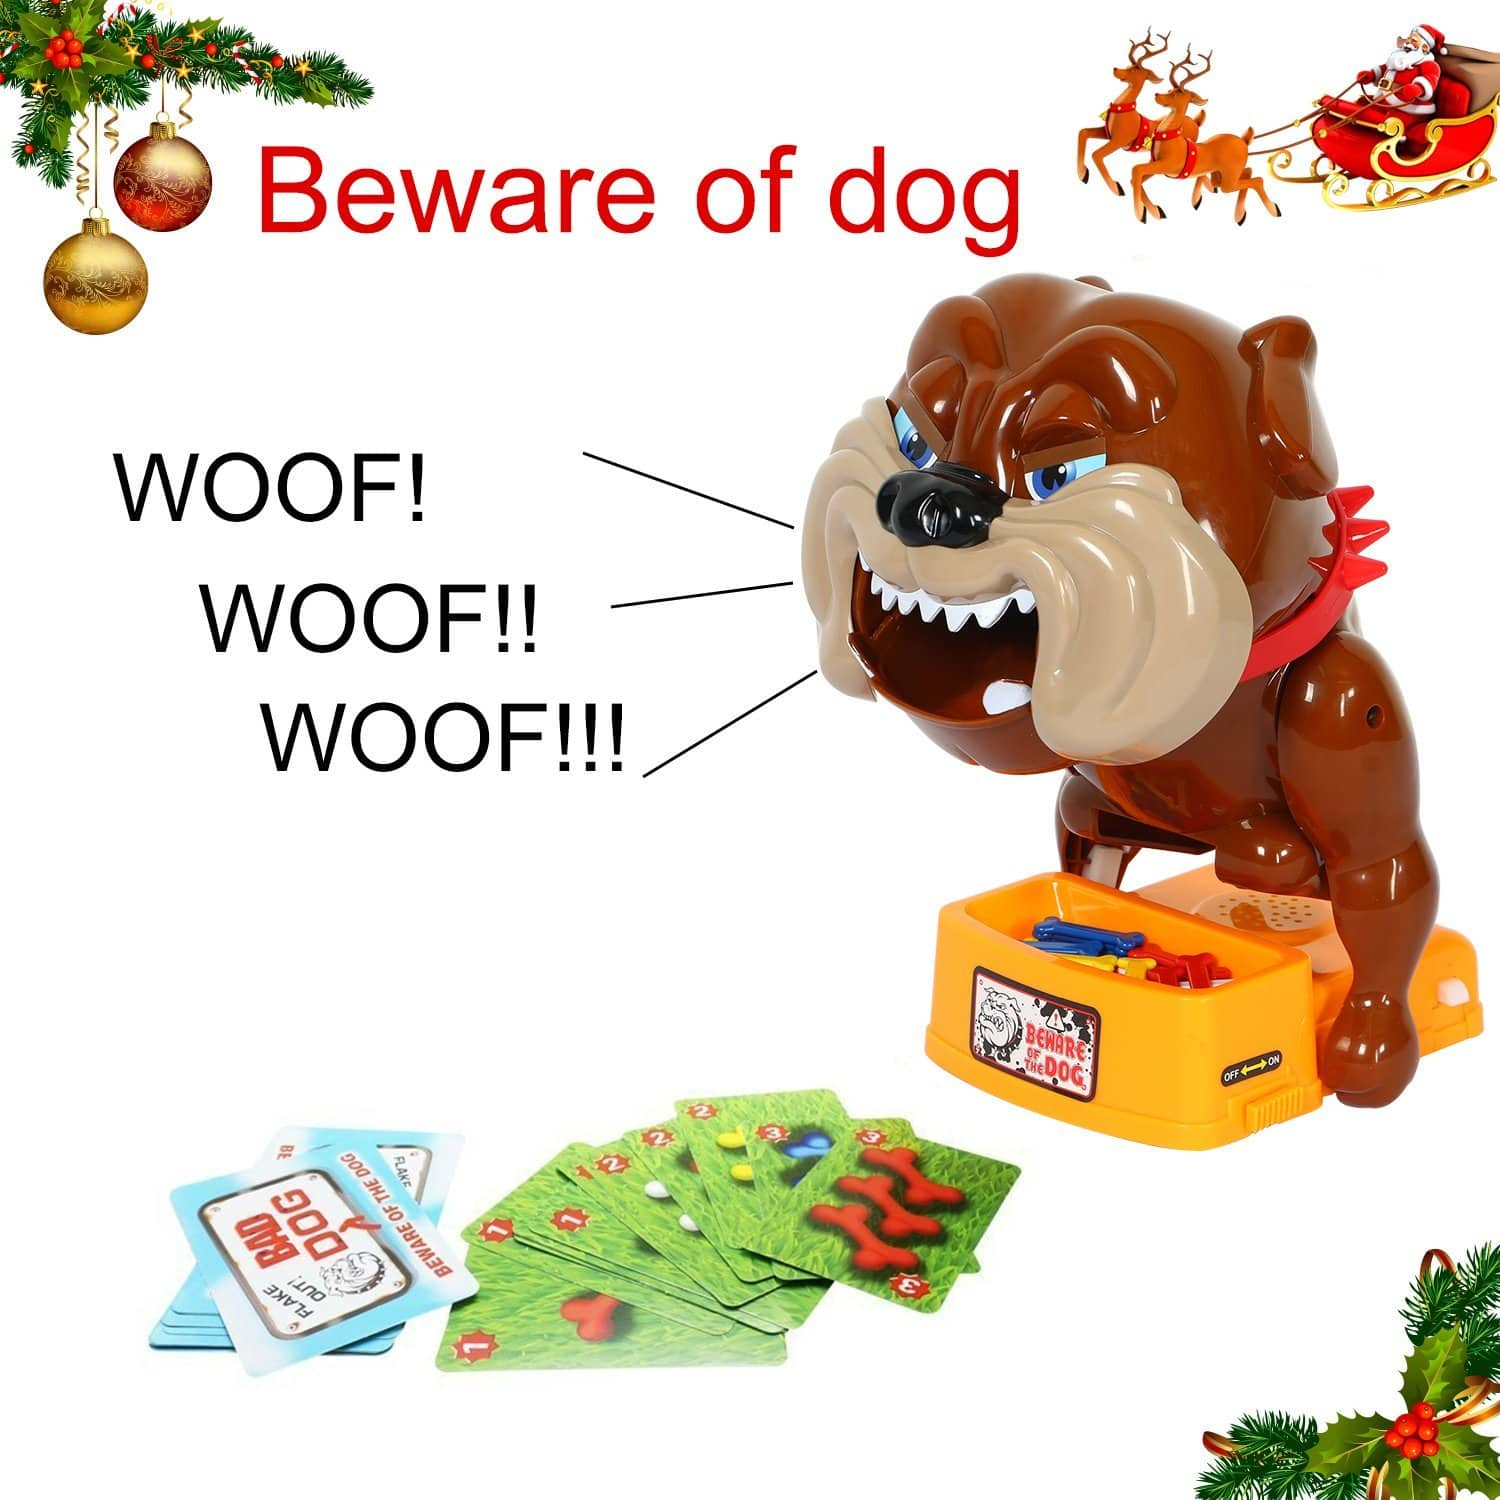 TONOR Be Ware of Barking Dog Novelty Prank Bones Card Toy Board Game for Kids/Party $12.99 AC (reg. $19.99)